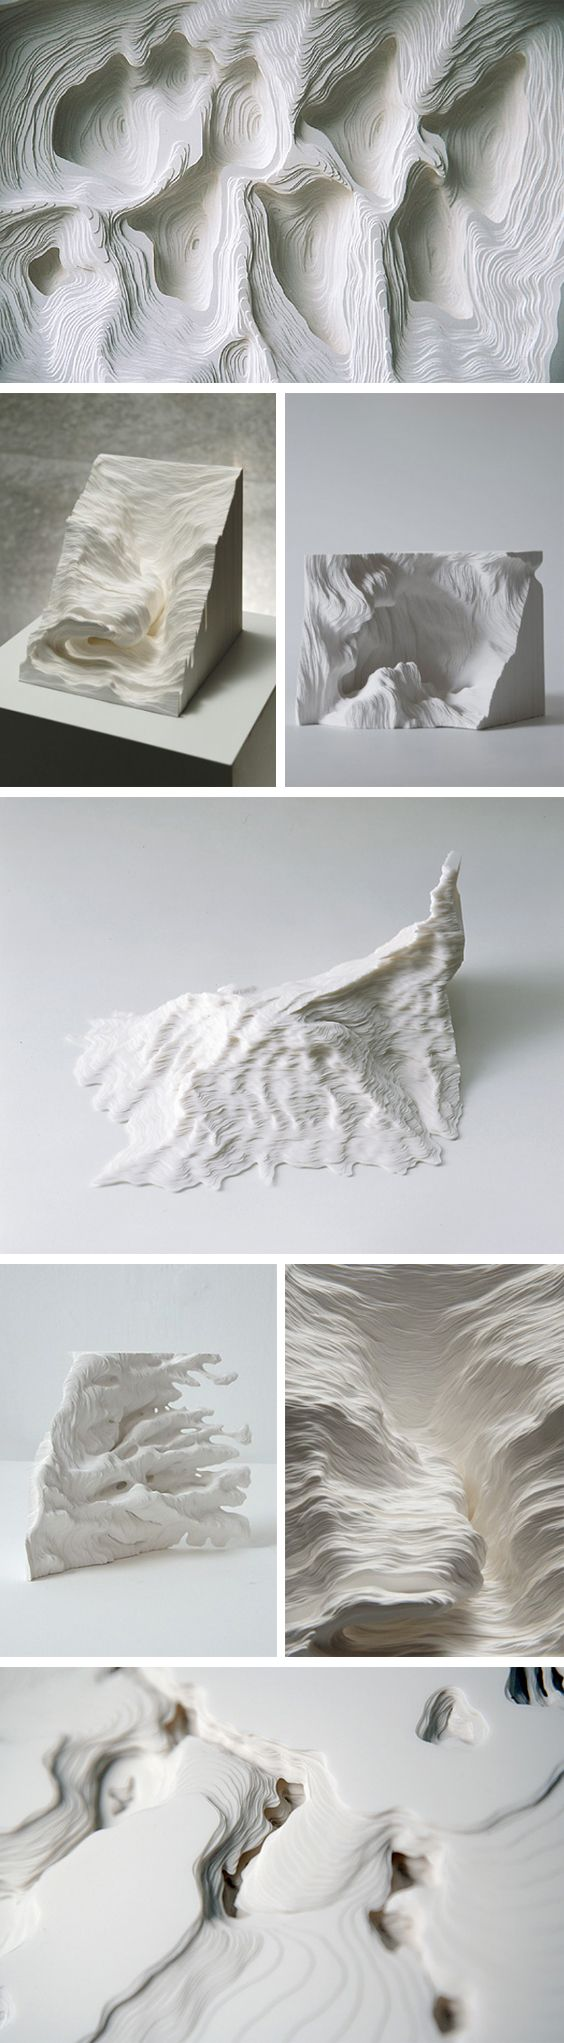 Click for more pics!   Topographic Paper Landscapes by Noriko Ambe #paperart